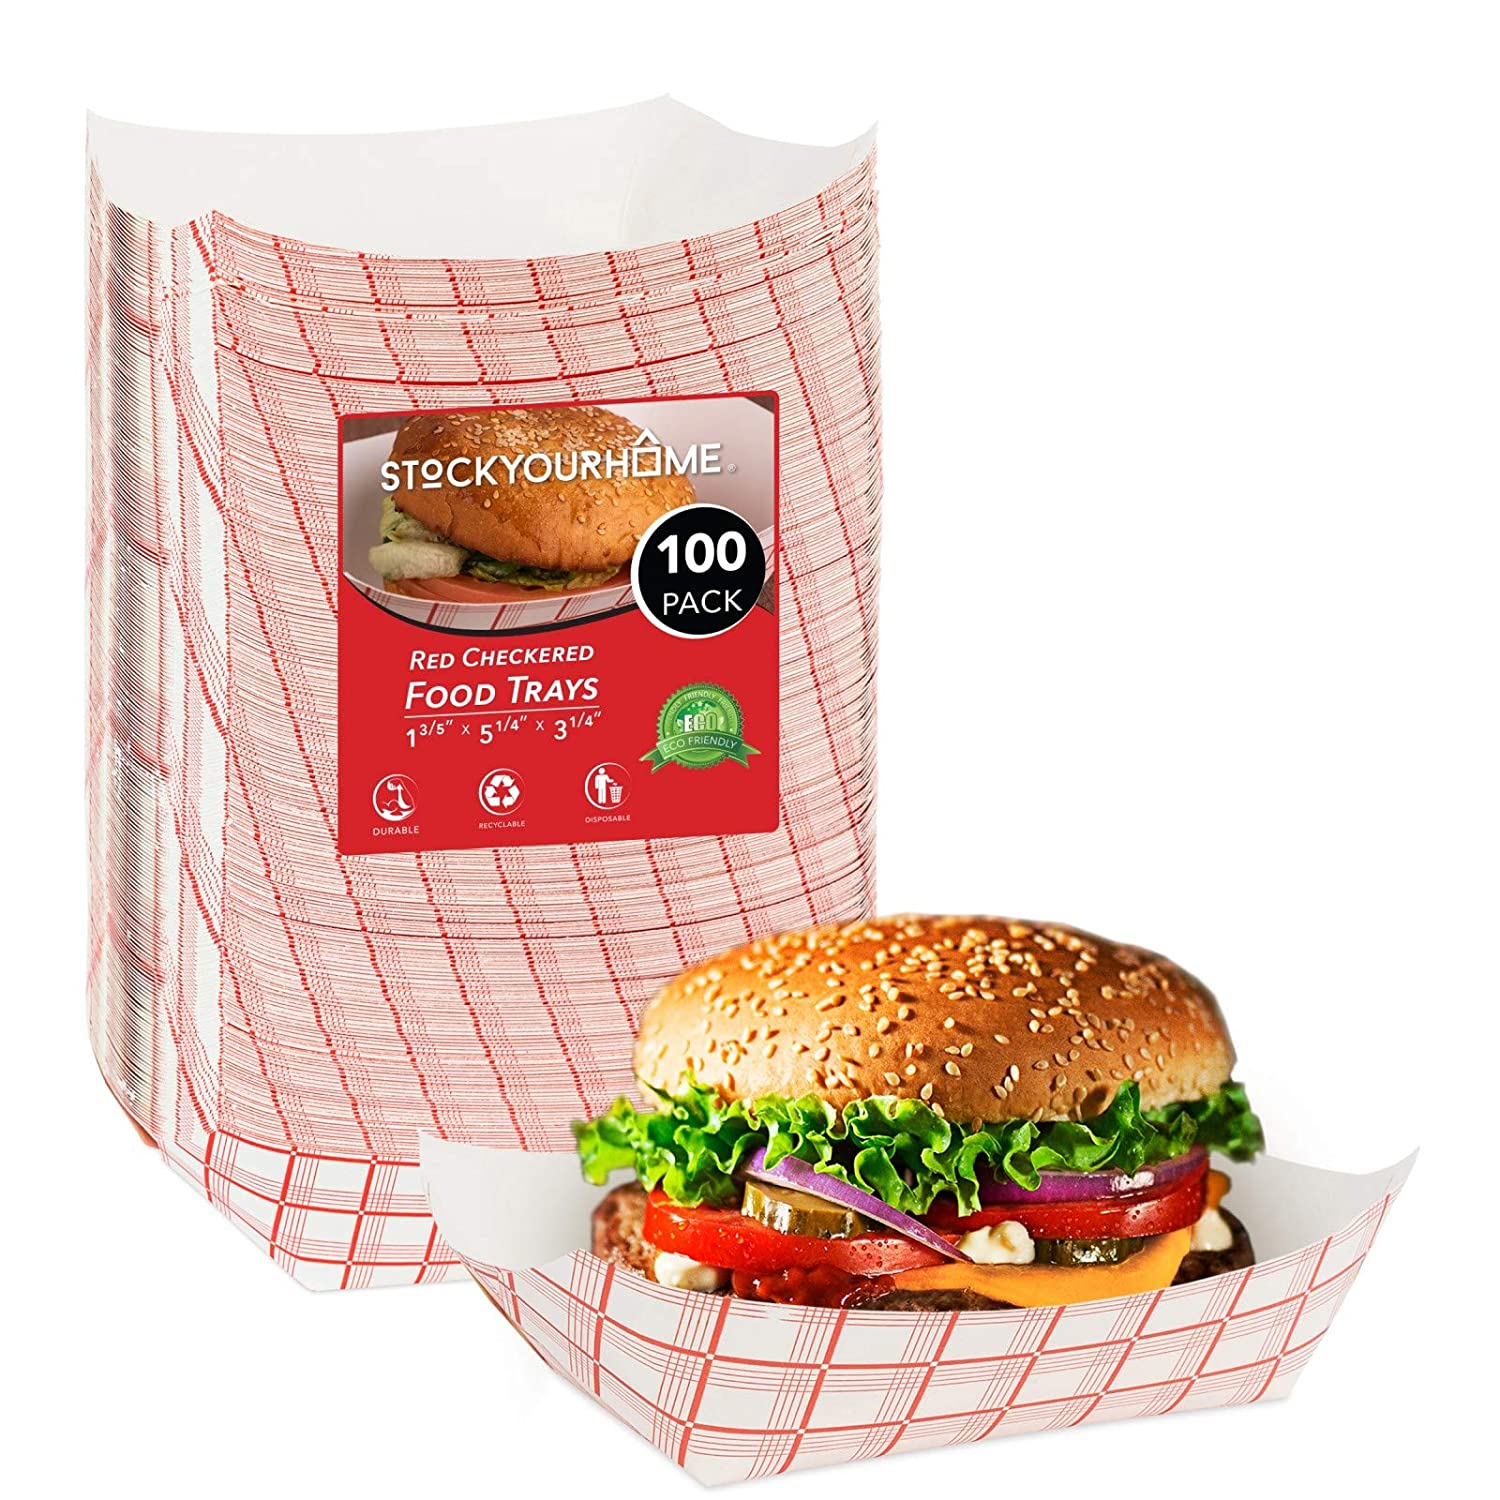 Paper Food Boats (100 Pack) Disposable Red and White Checkered Paper Food Trays - Eco Friendly Red Paper Food Trays 3 Lb – Serving Boats for Concession Food and Condiments, Paper Food Trays 5.75